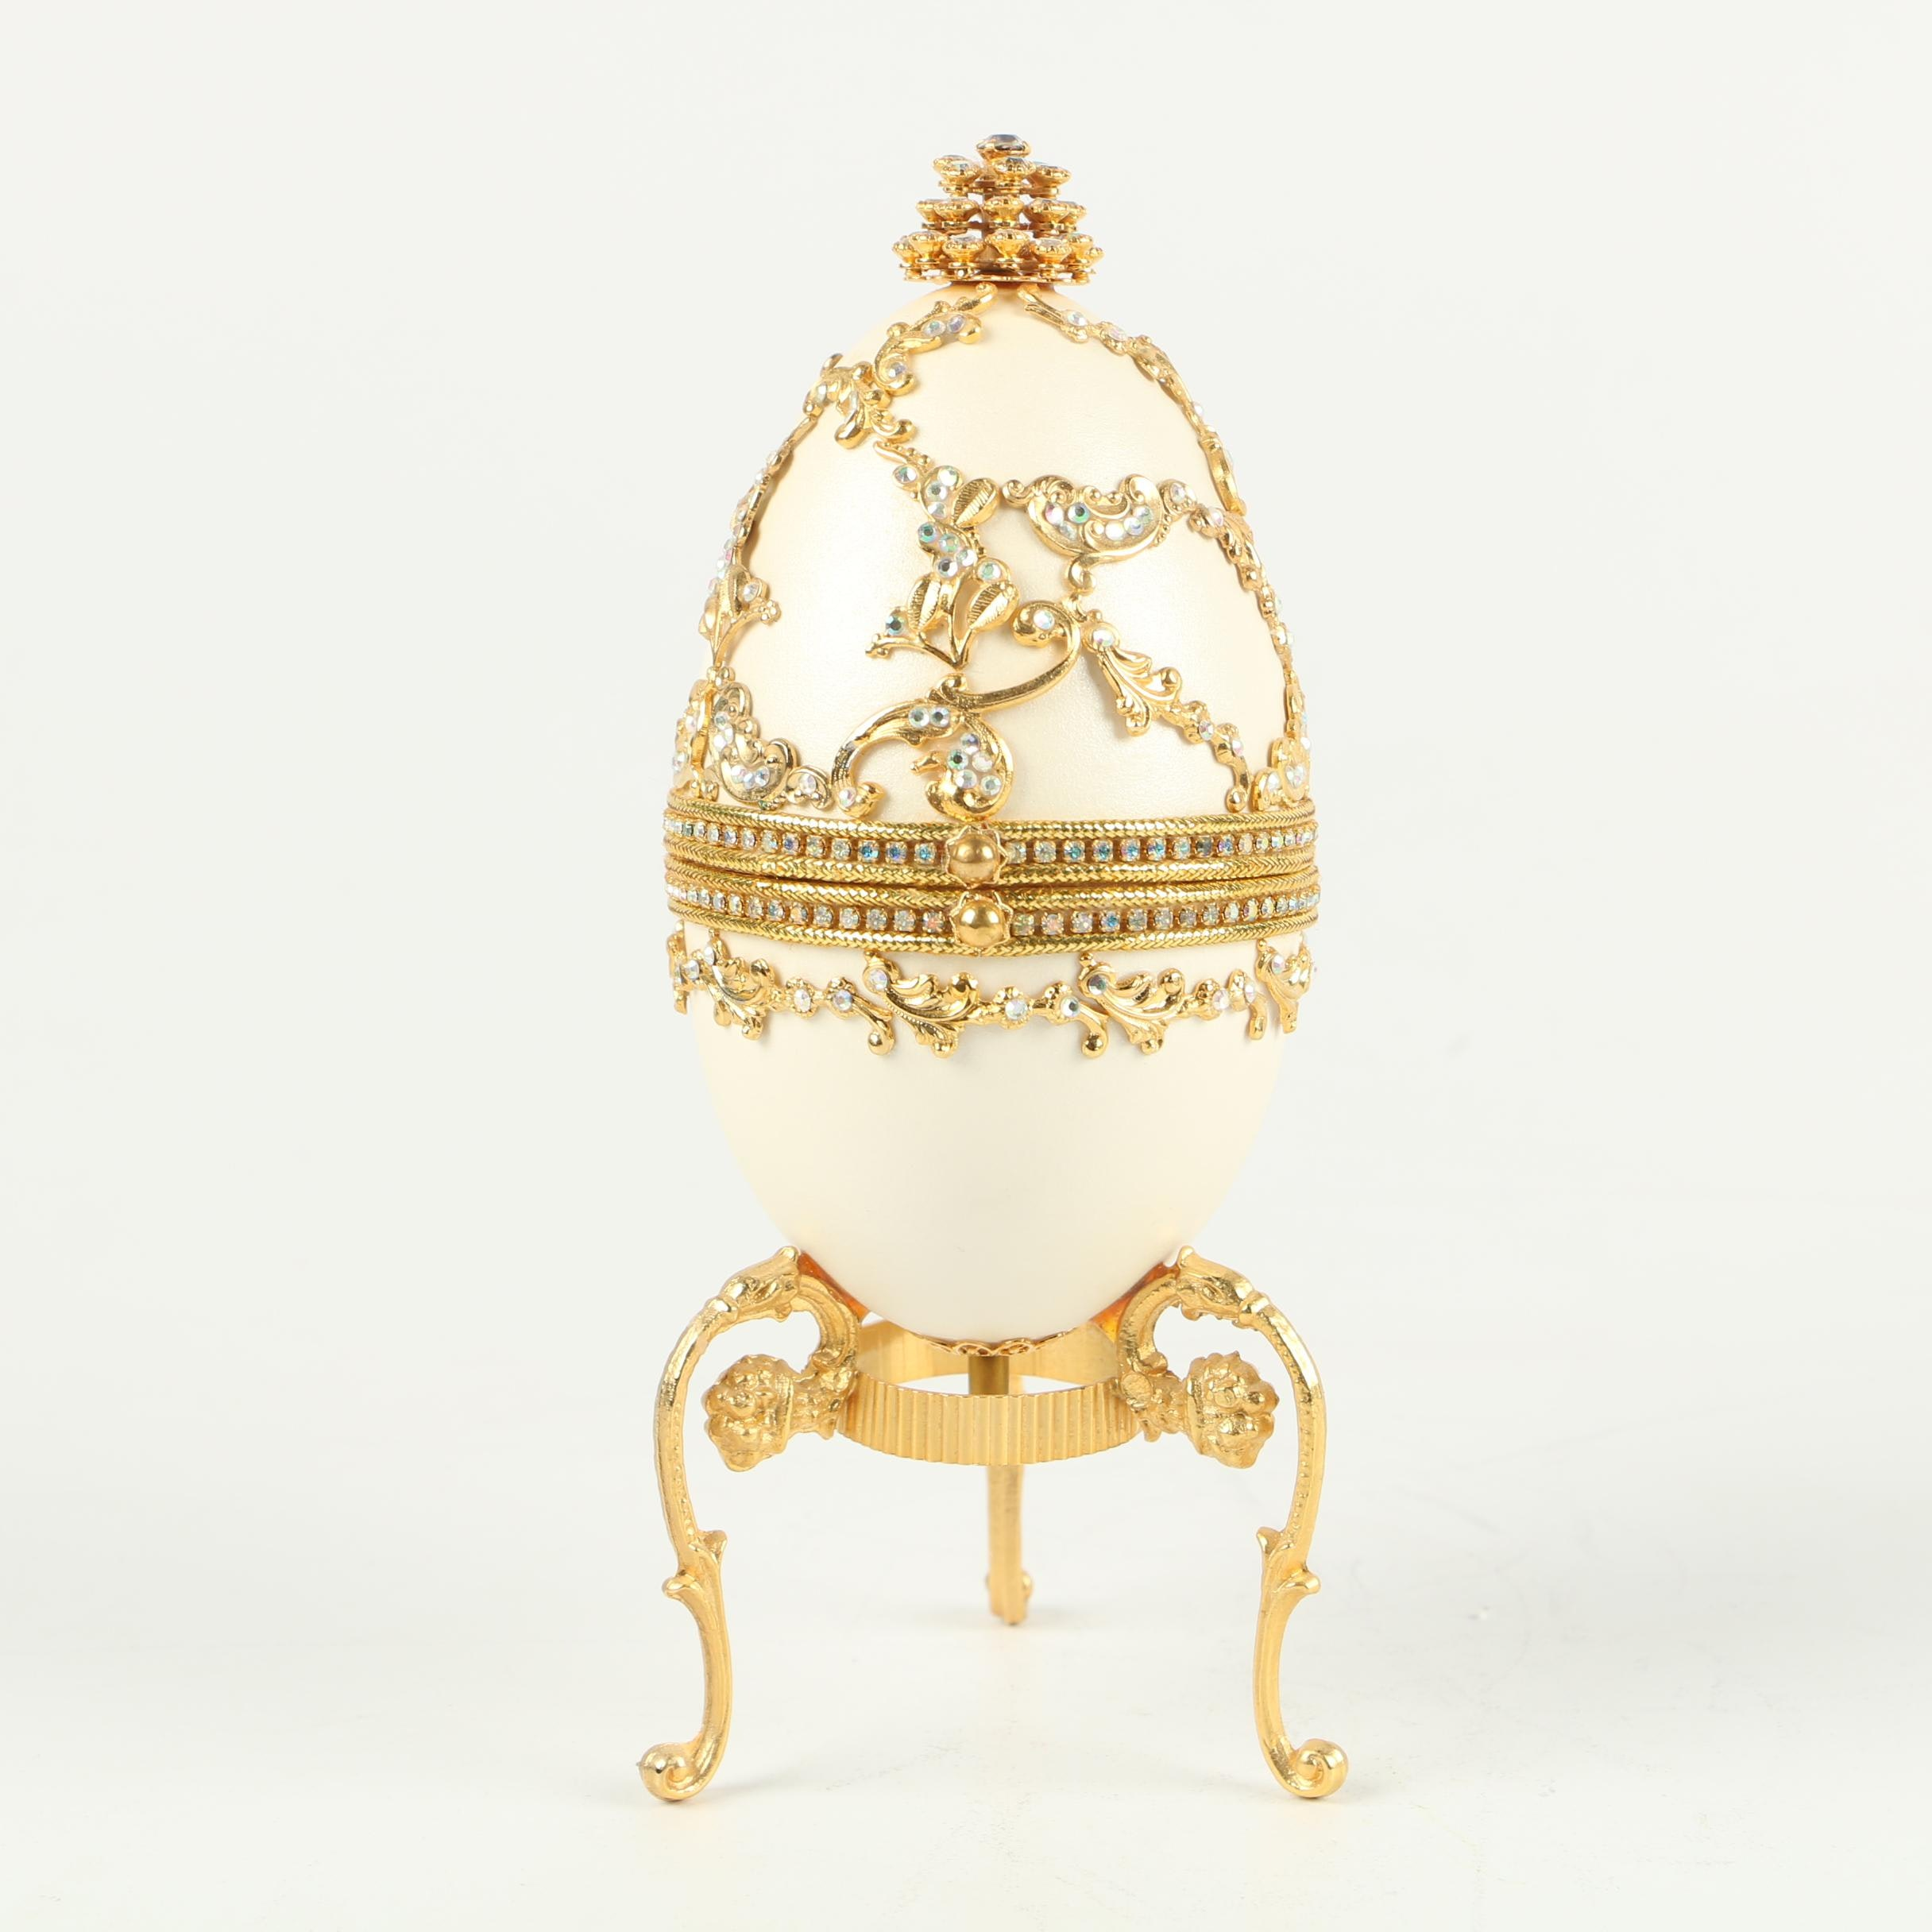 """Fabergé Style """"Jewel"""" Encrusted Egg Shell Music Box on Stand with Gilt Accents"""